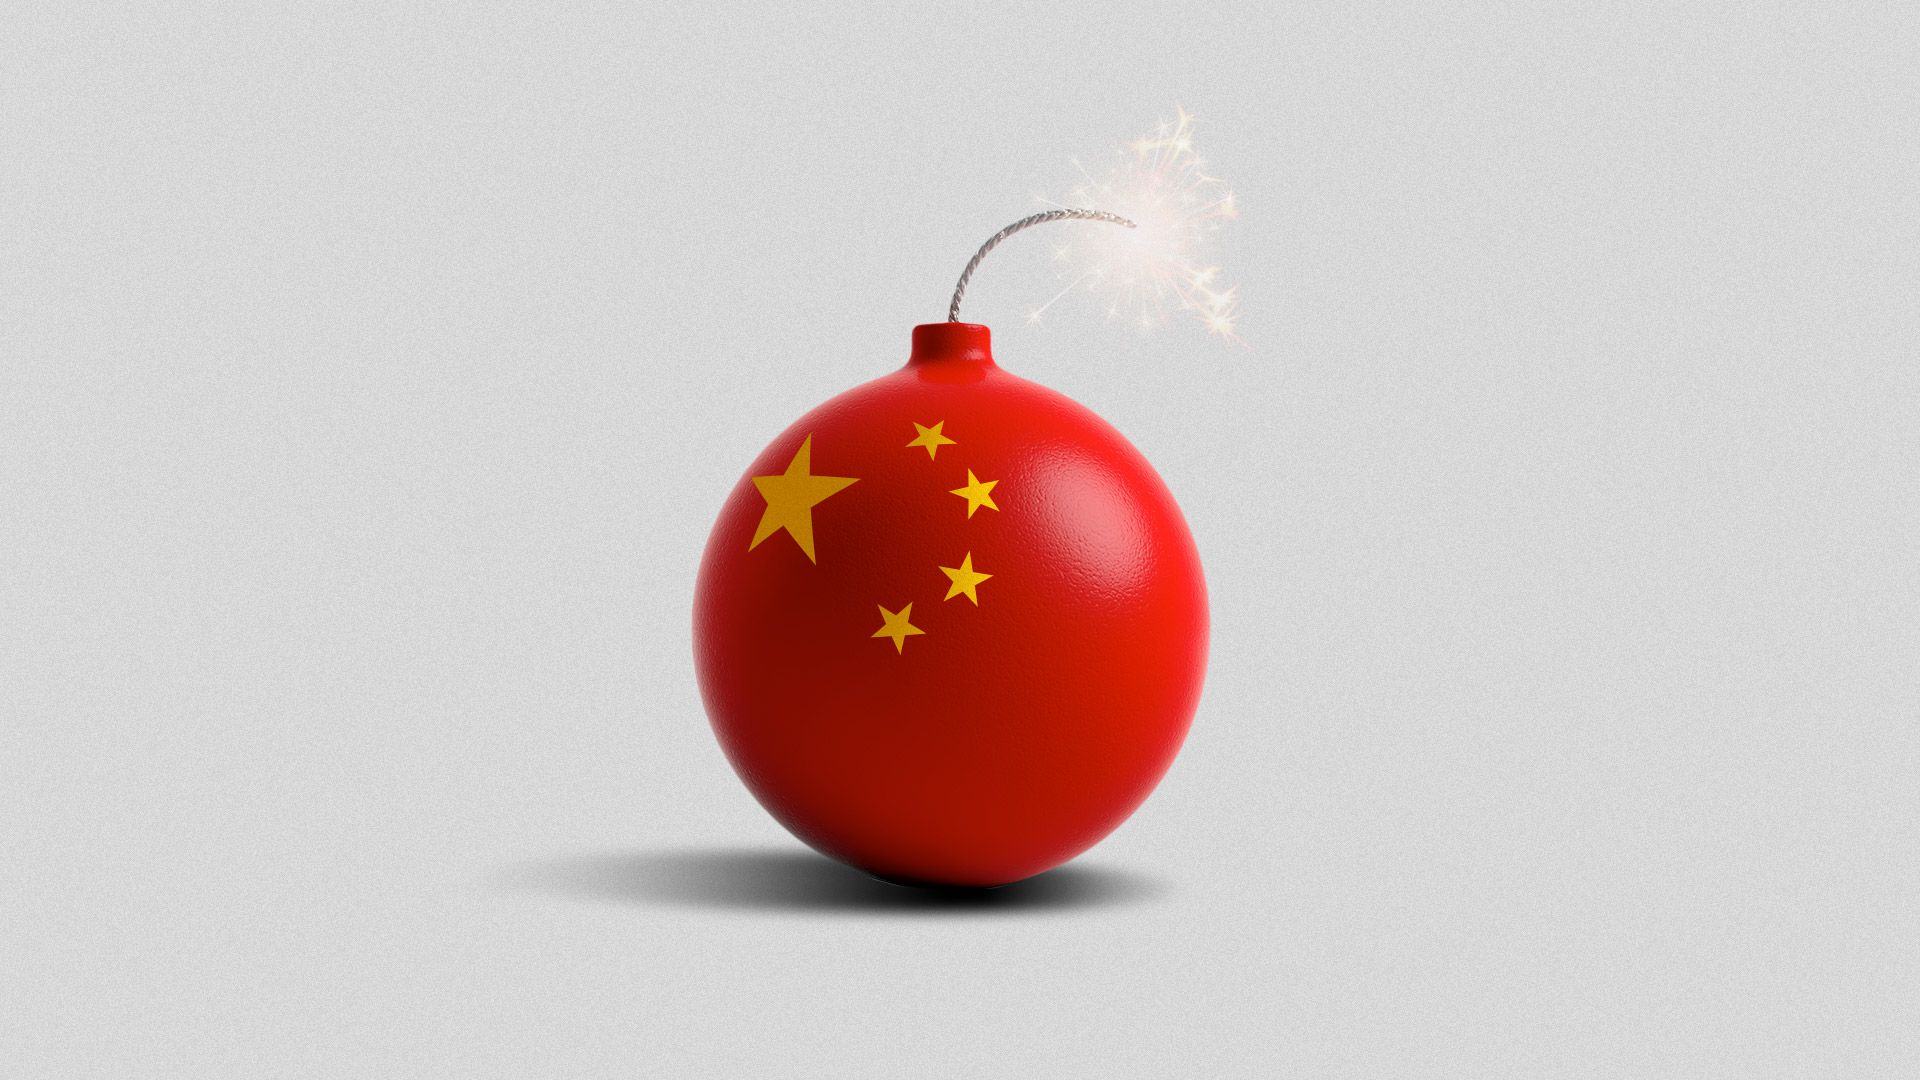 Illustration of a lit round bomb with Chinese stars on it